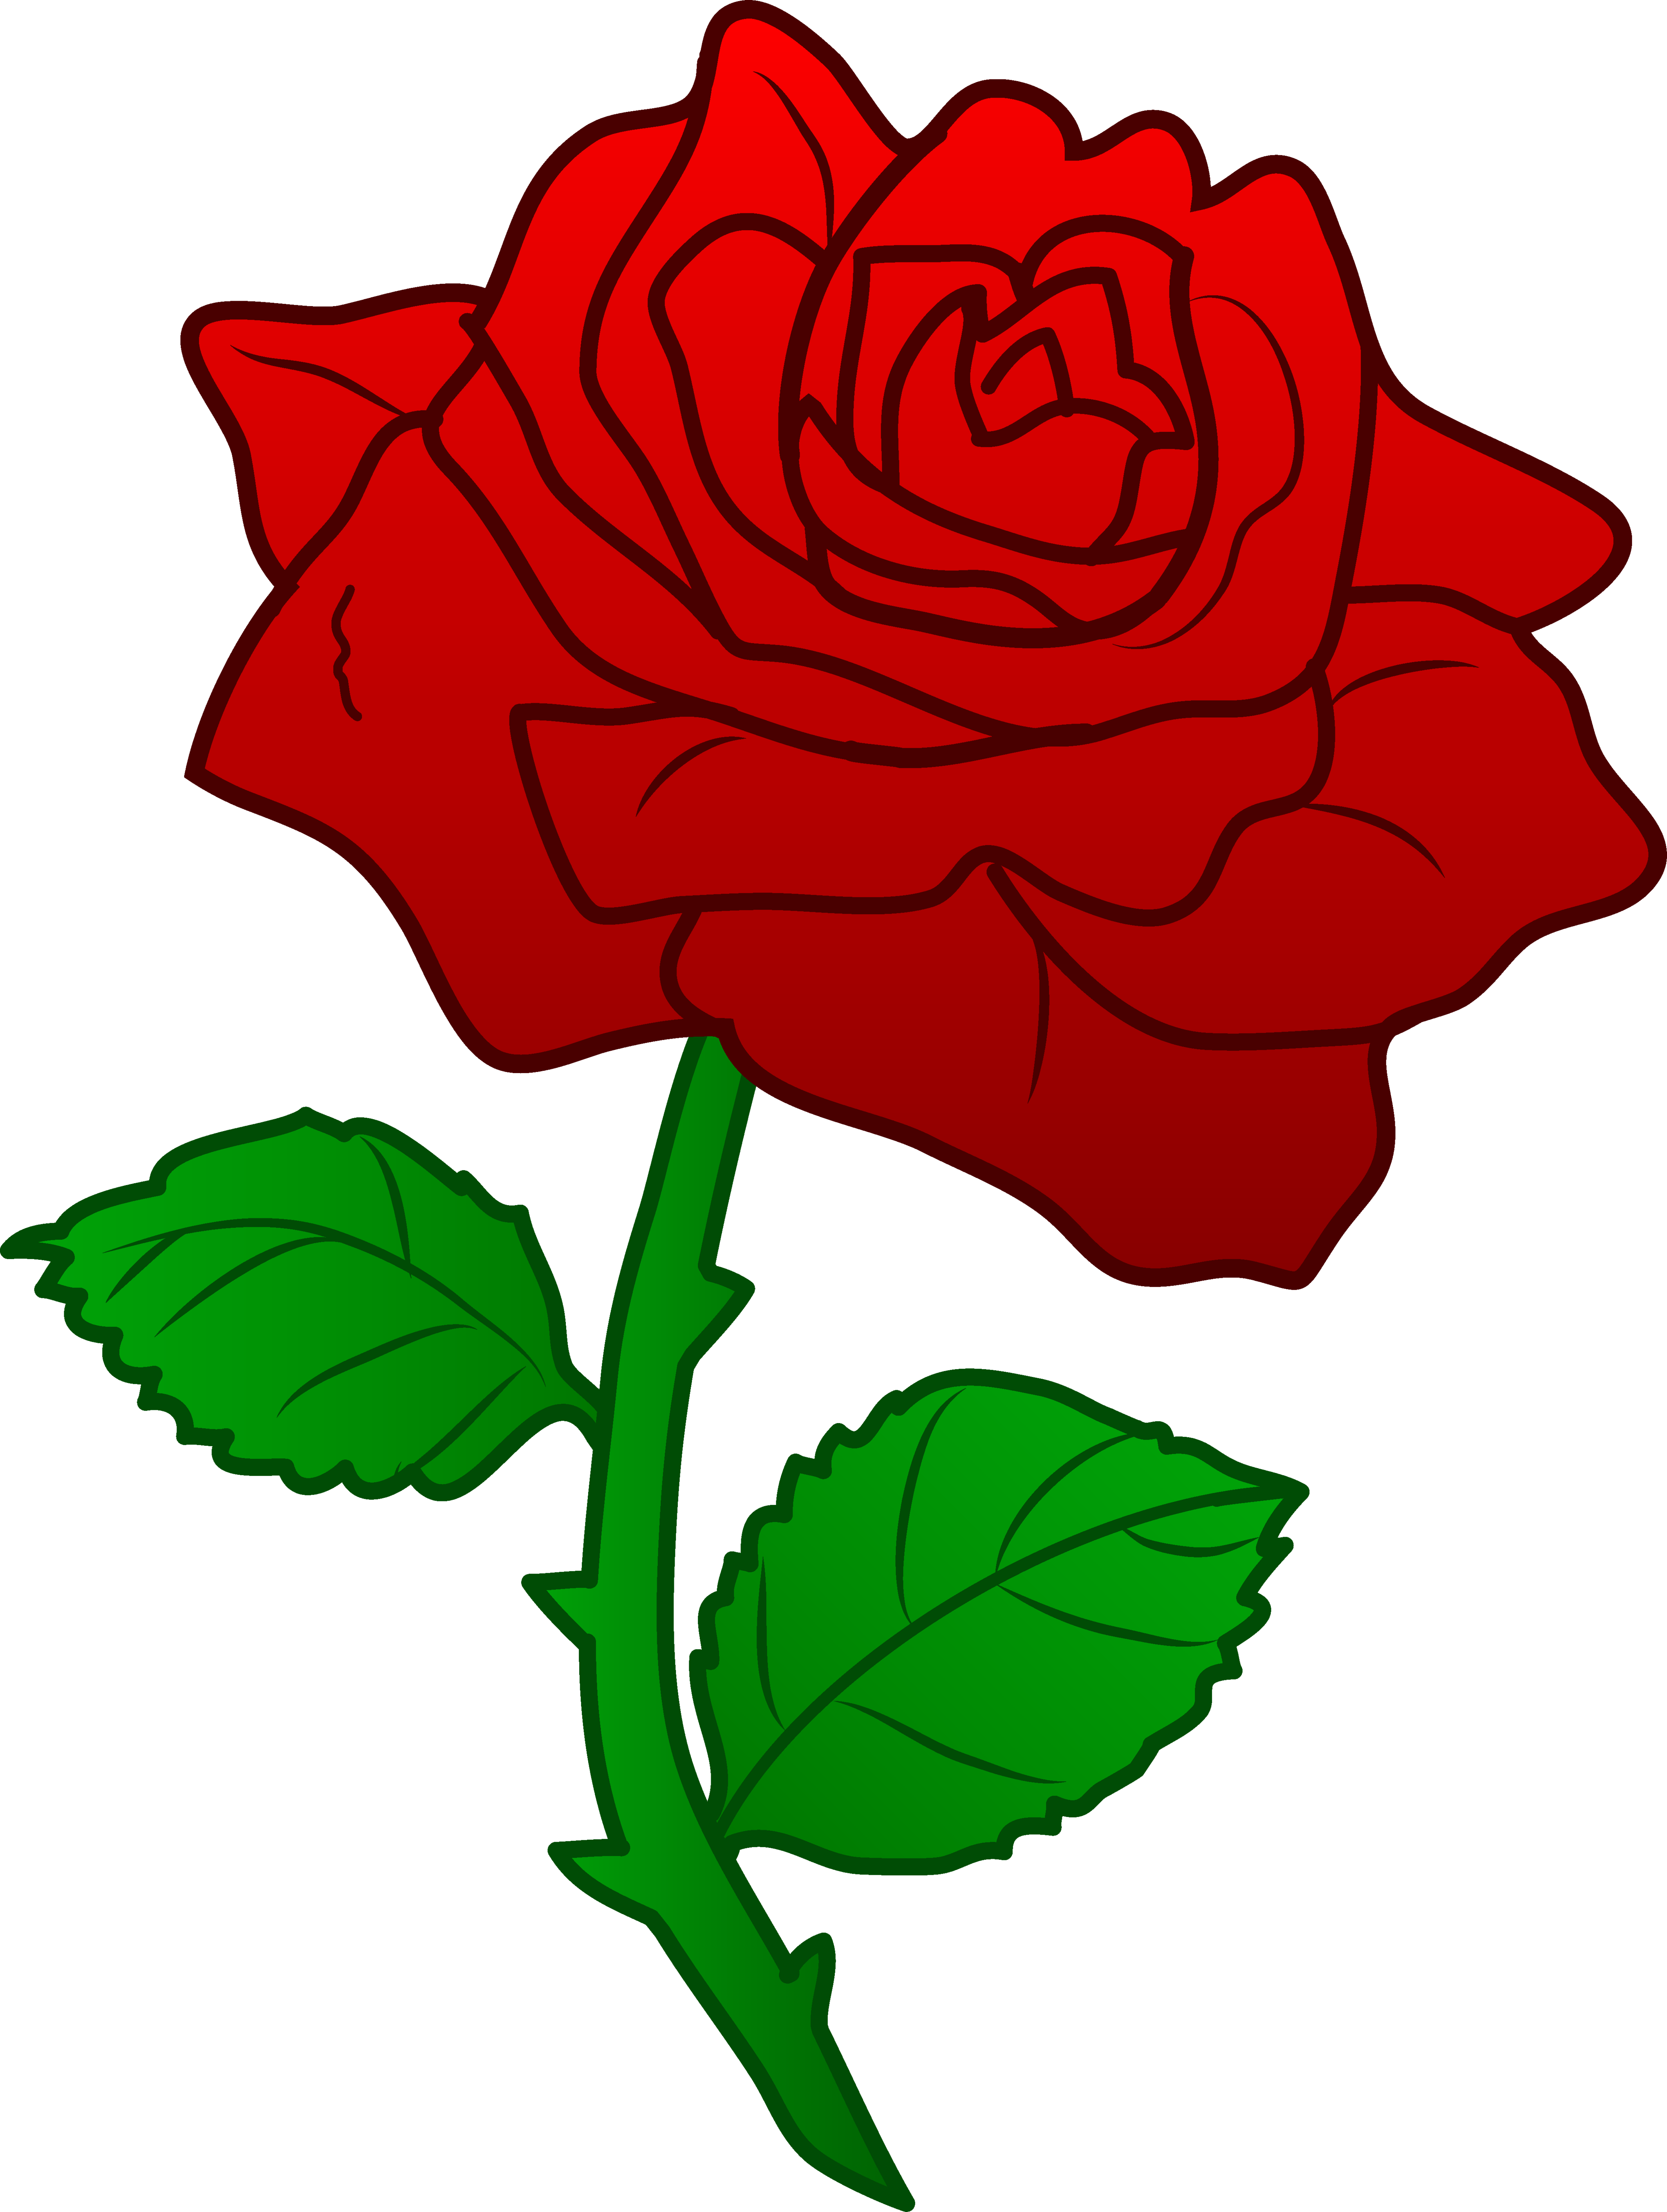 ... Image Clipart Rose Clipart - Free to use Clip Art Resource ...